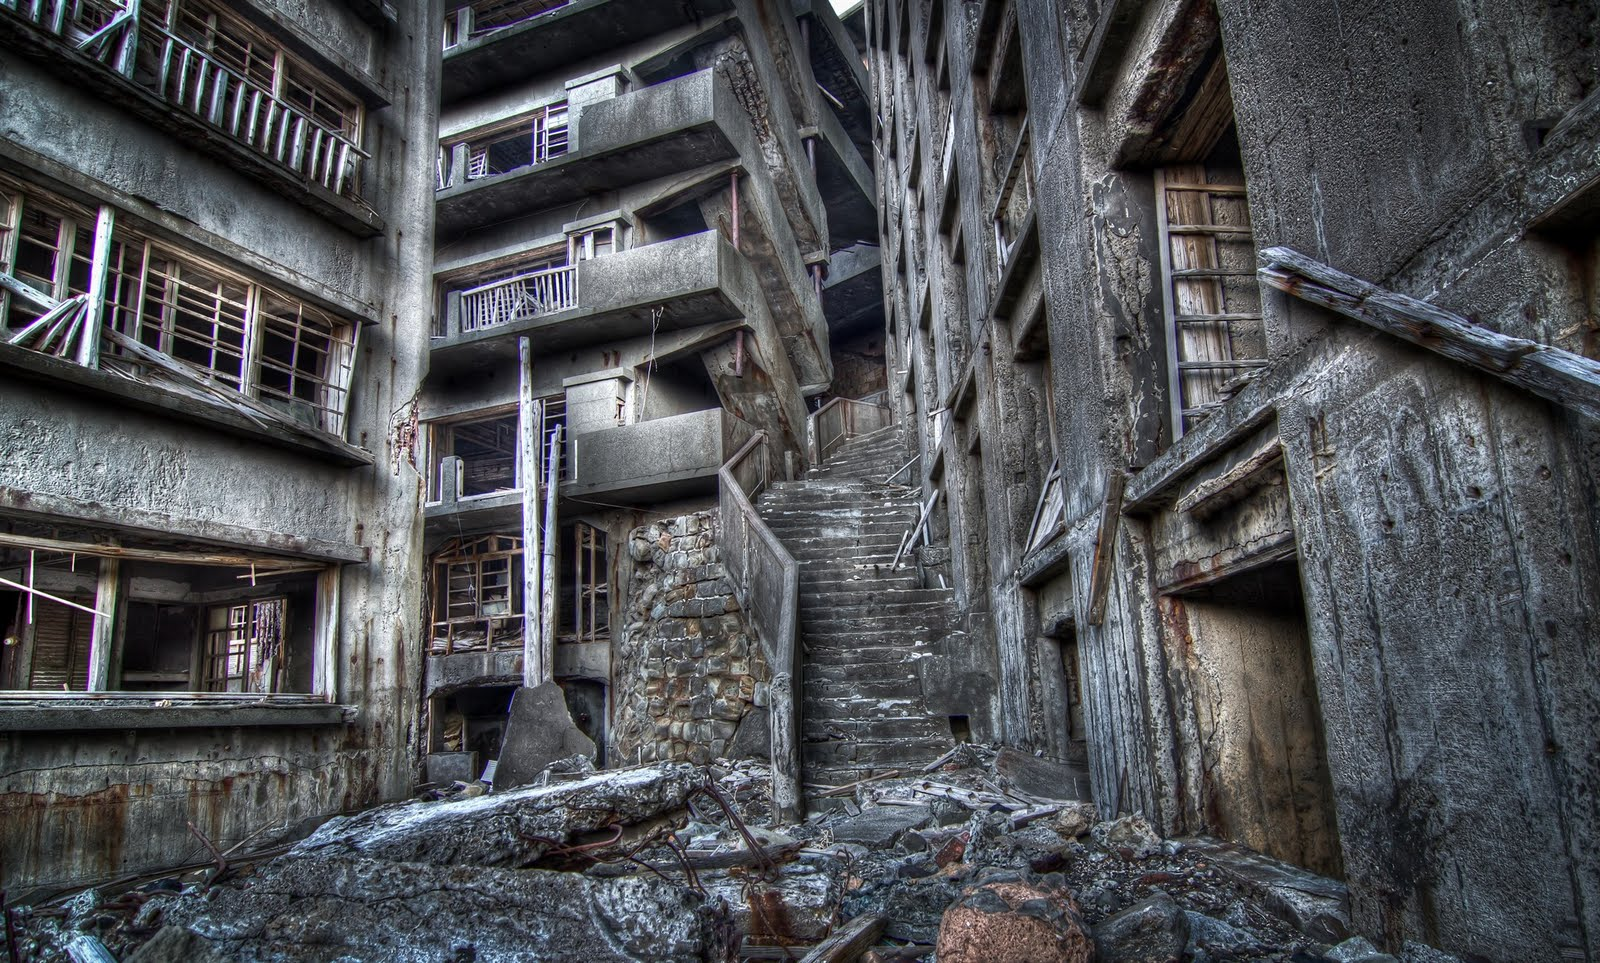 Secret Lexicon: Hashima - Battleship Island